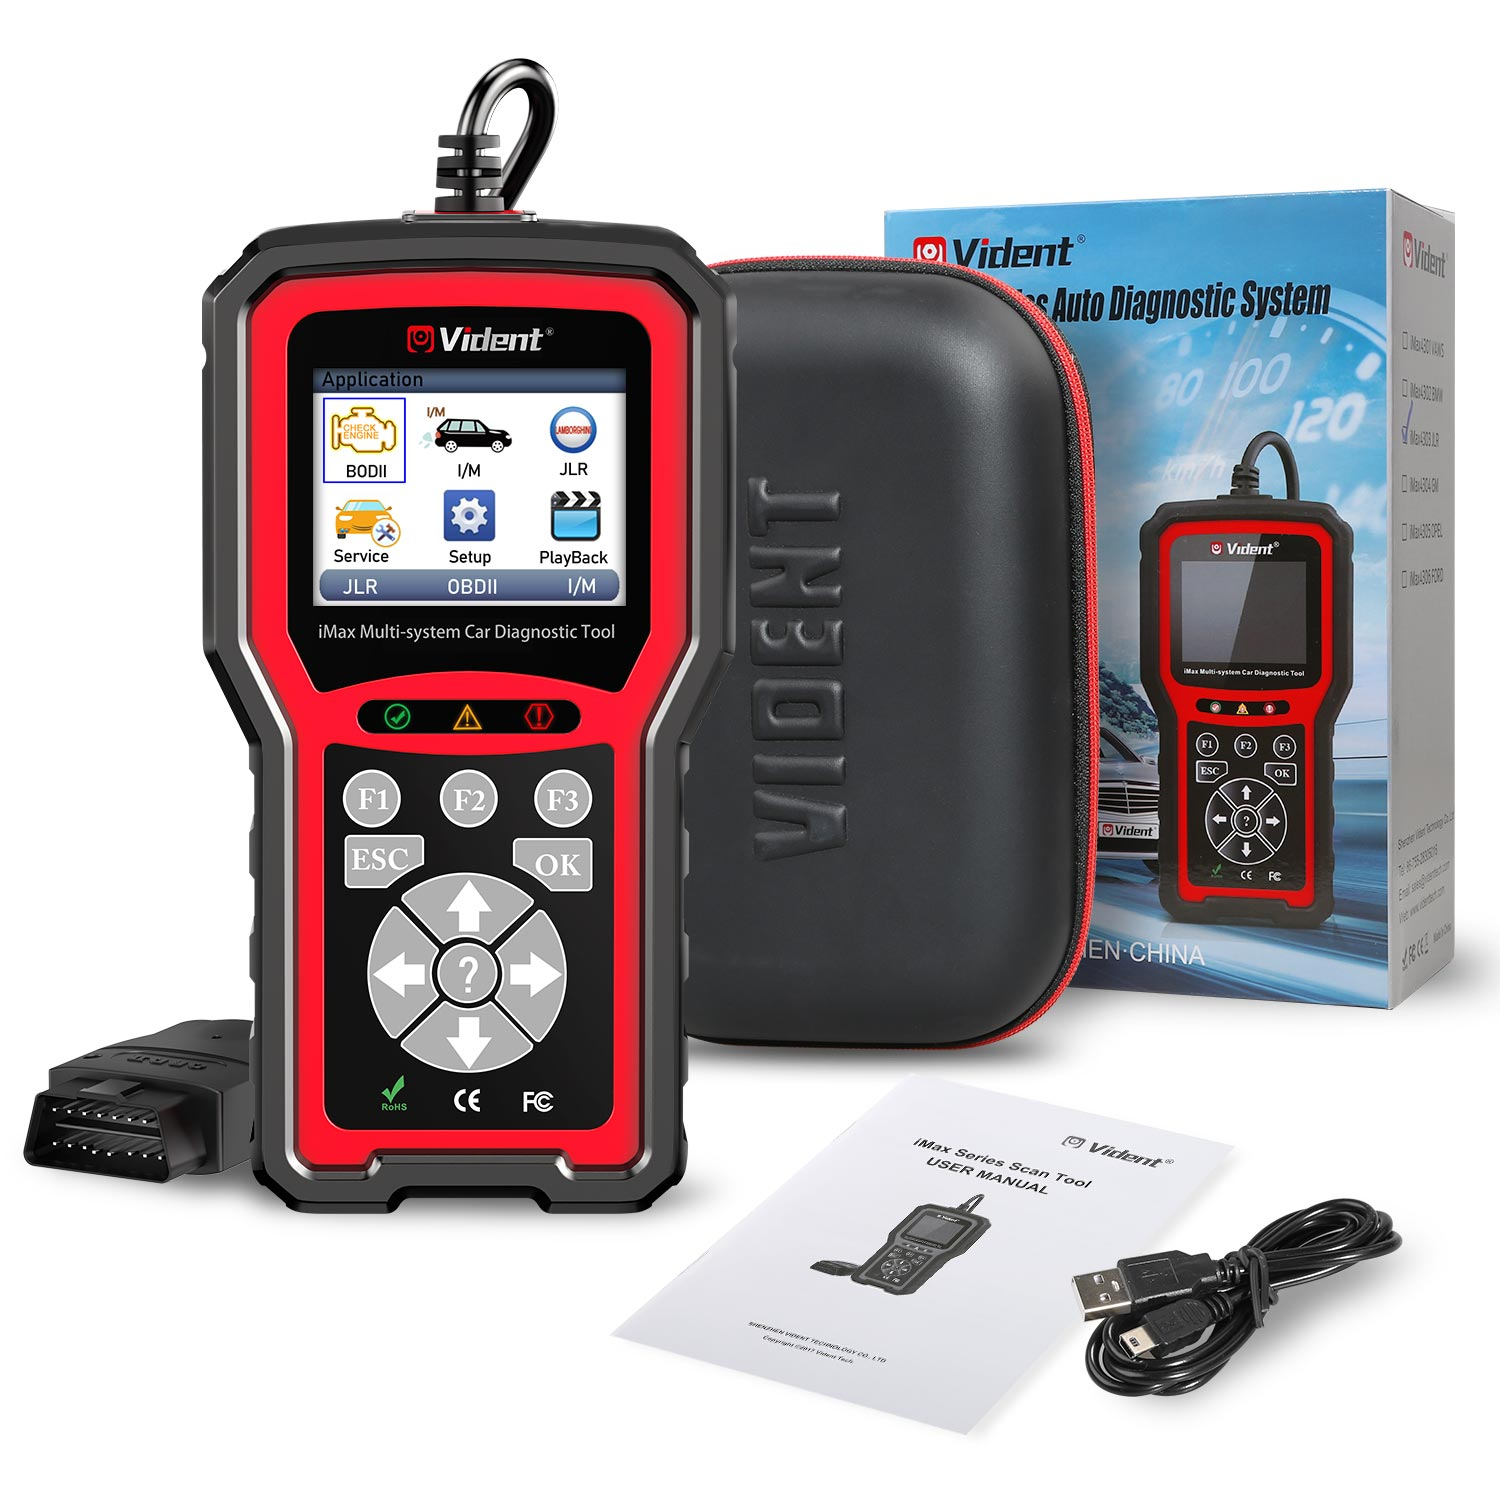 vident-imax4303-jlr-diagnostic-scanner